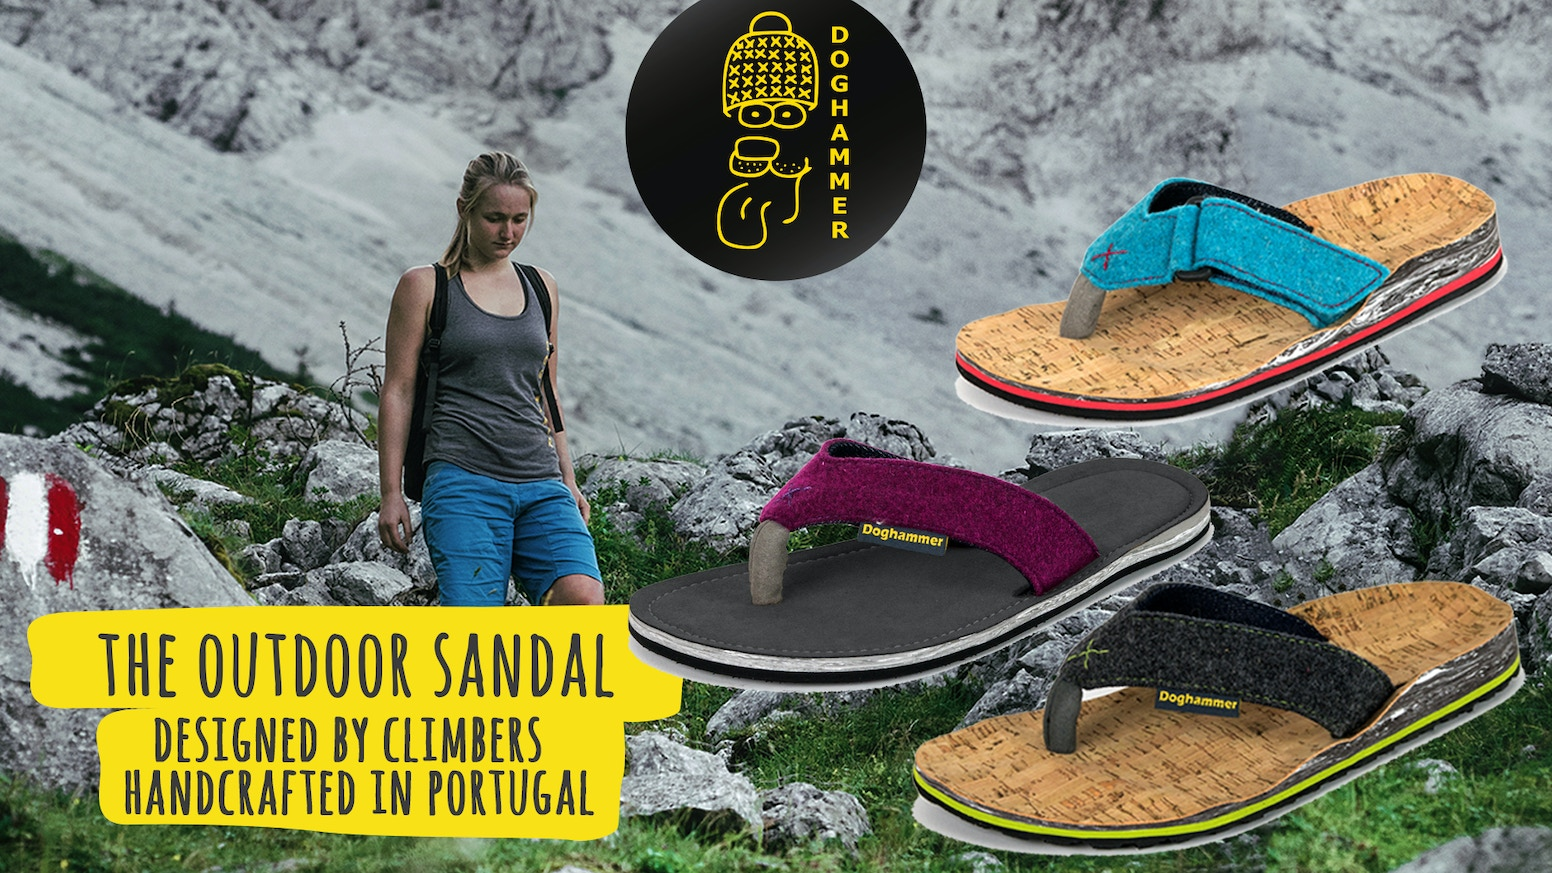 The outdoor shoe - designed by climbers and handcrafted in Portugal is an open toed shoe for travelers, backpackers and nature lovers.